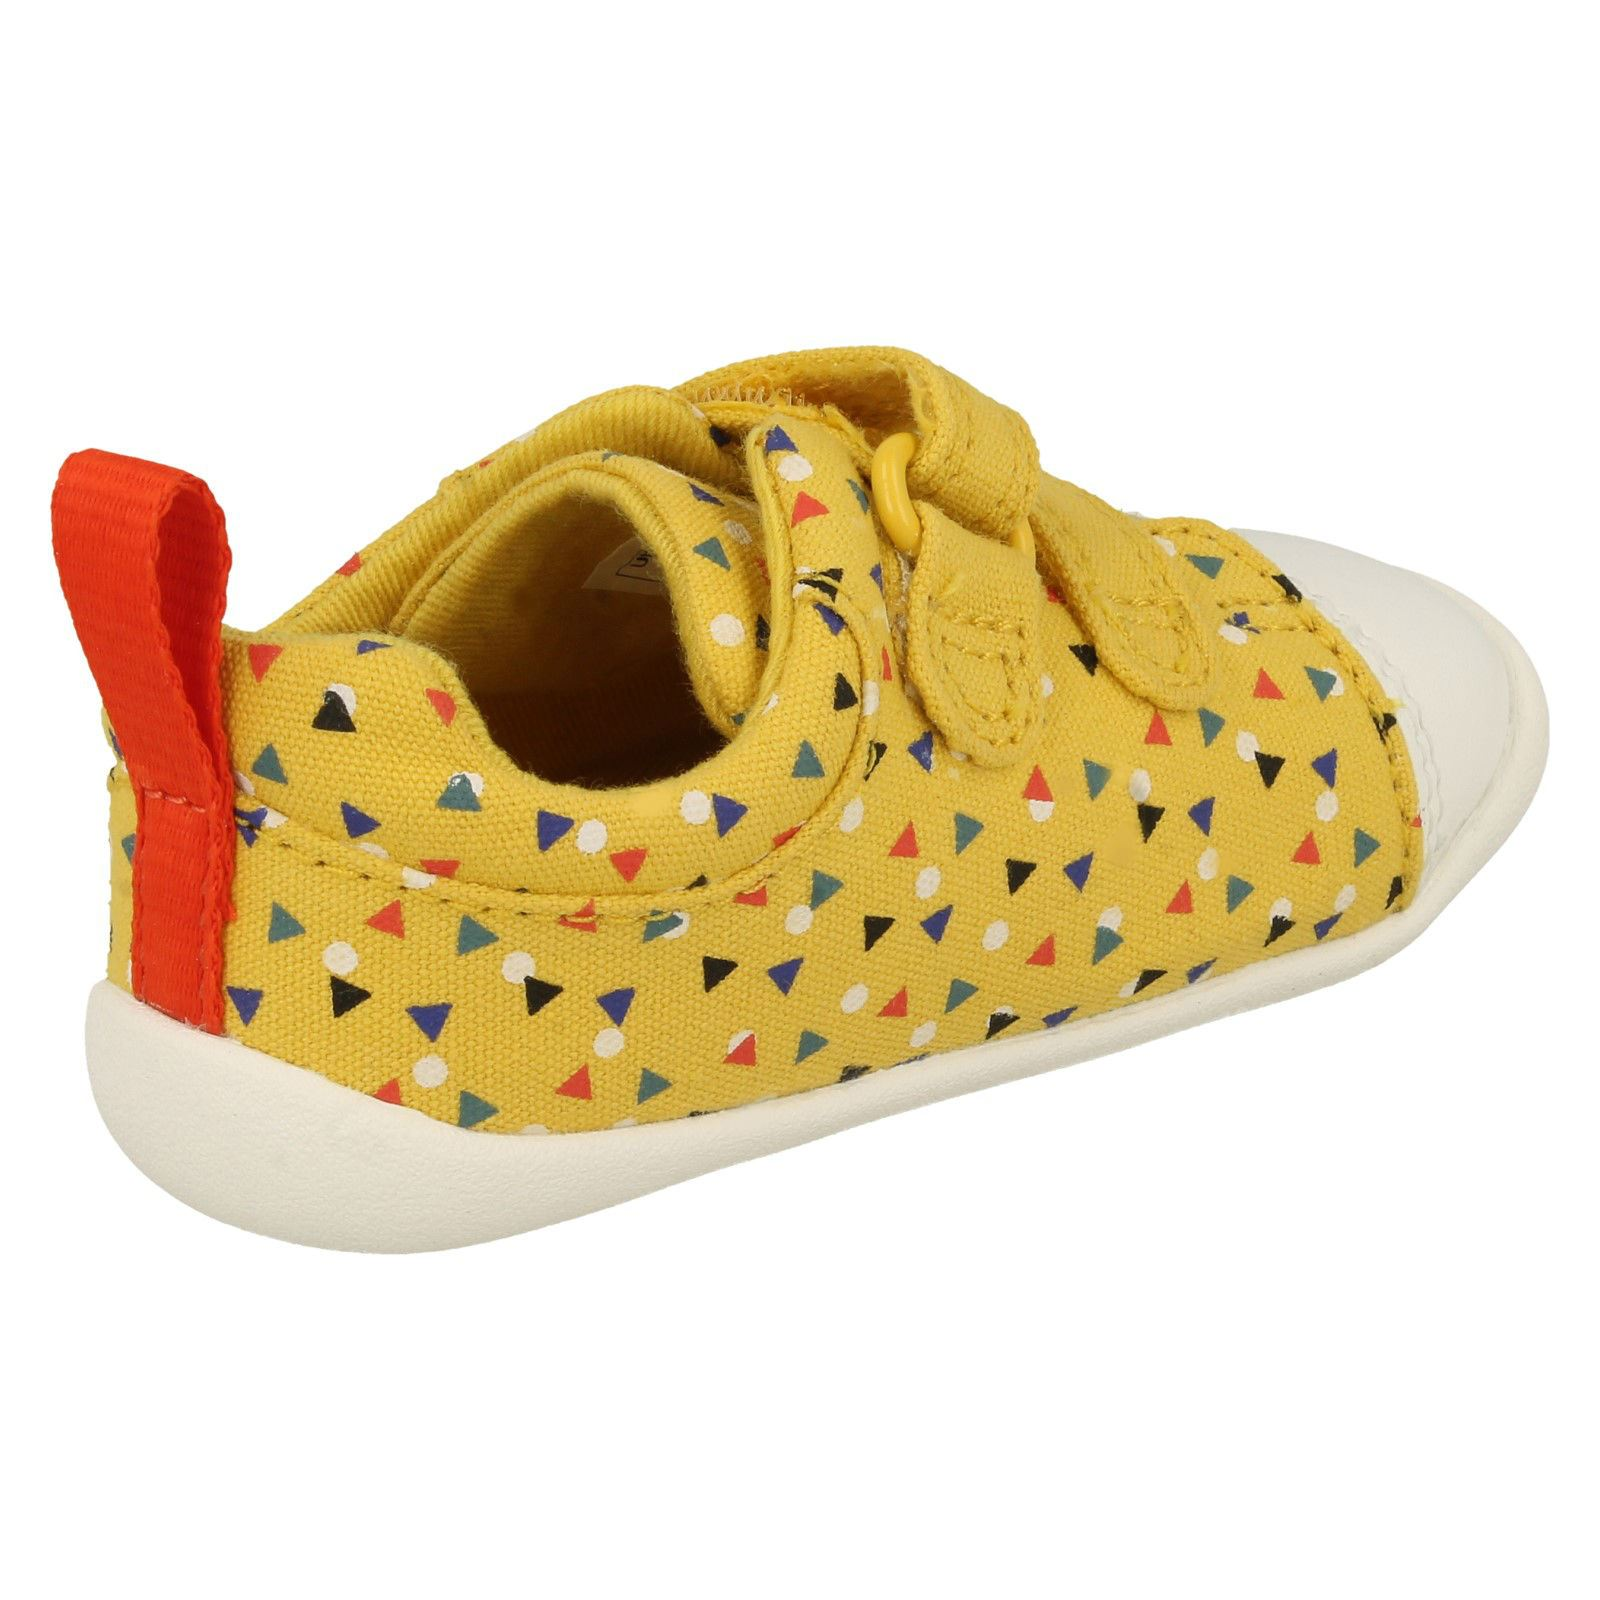 Childrens Boys Girls Clarks Pre-Walking Shoes Roamer Craft